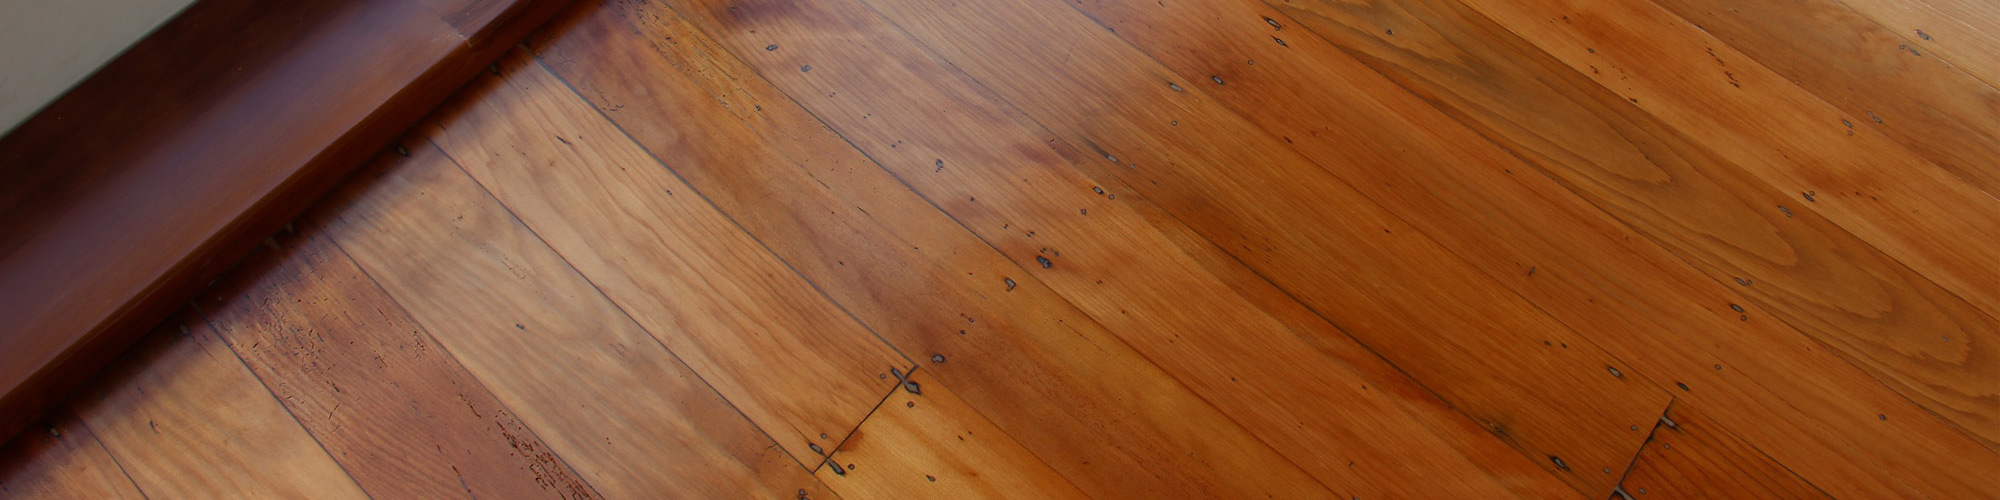 Laminate flooring suppliers auckland meze blog for Laminate flooring nz